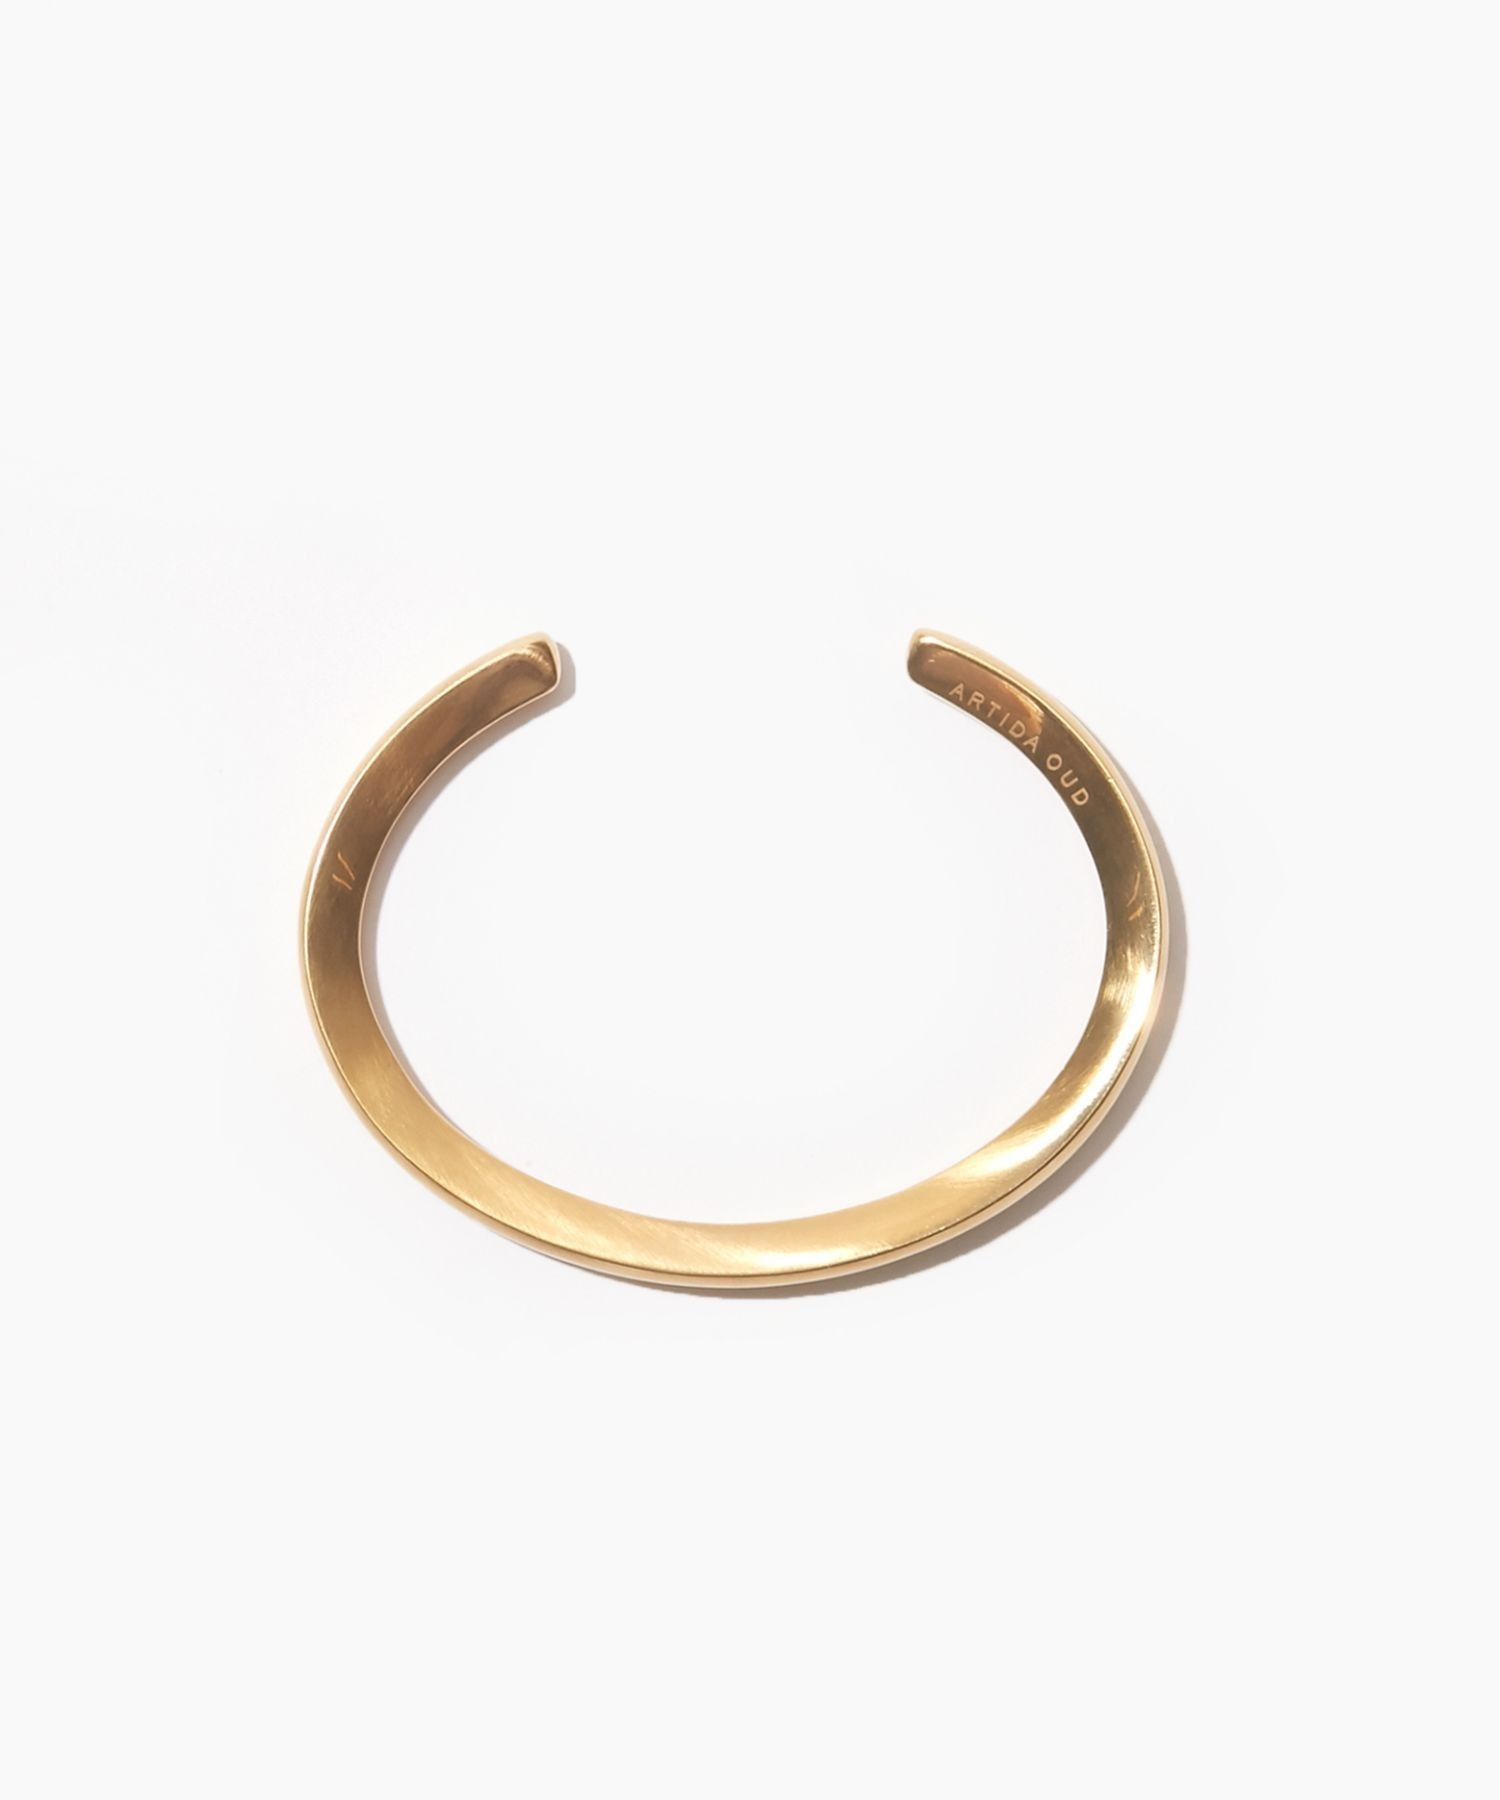 [bone] organic mat thin bangle